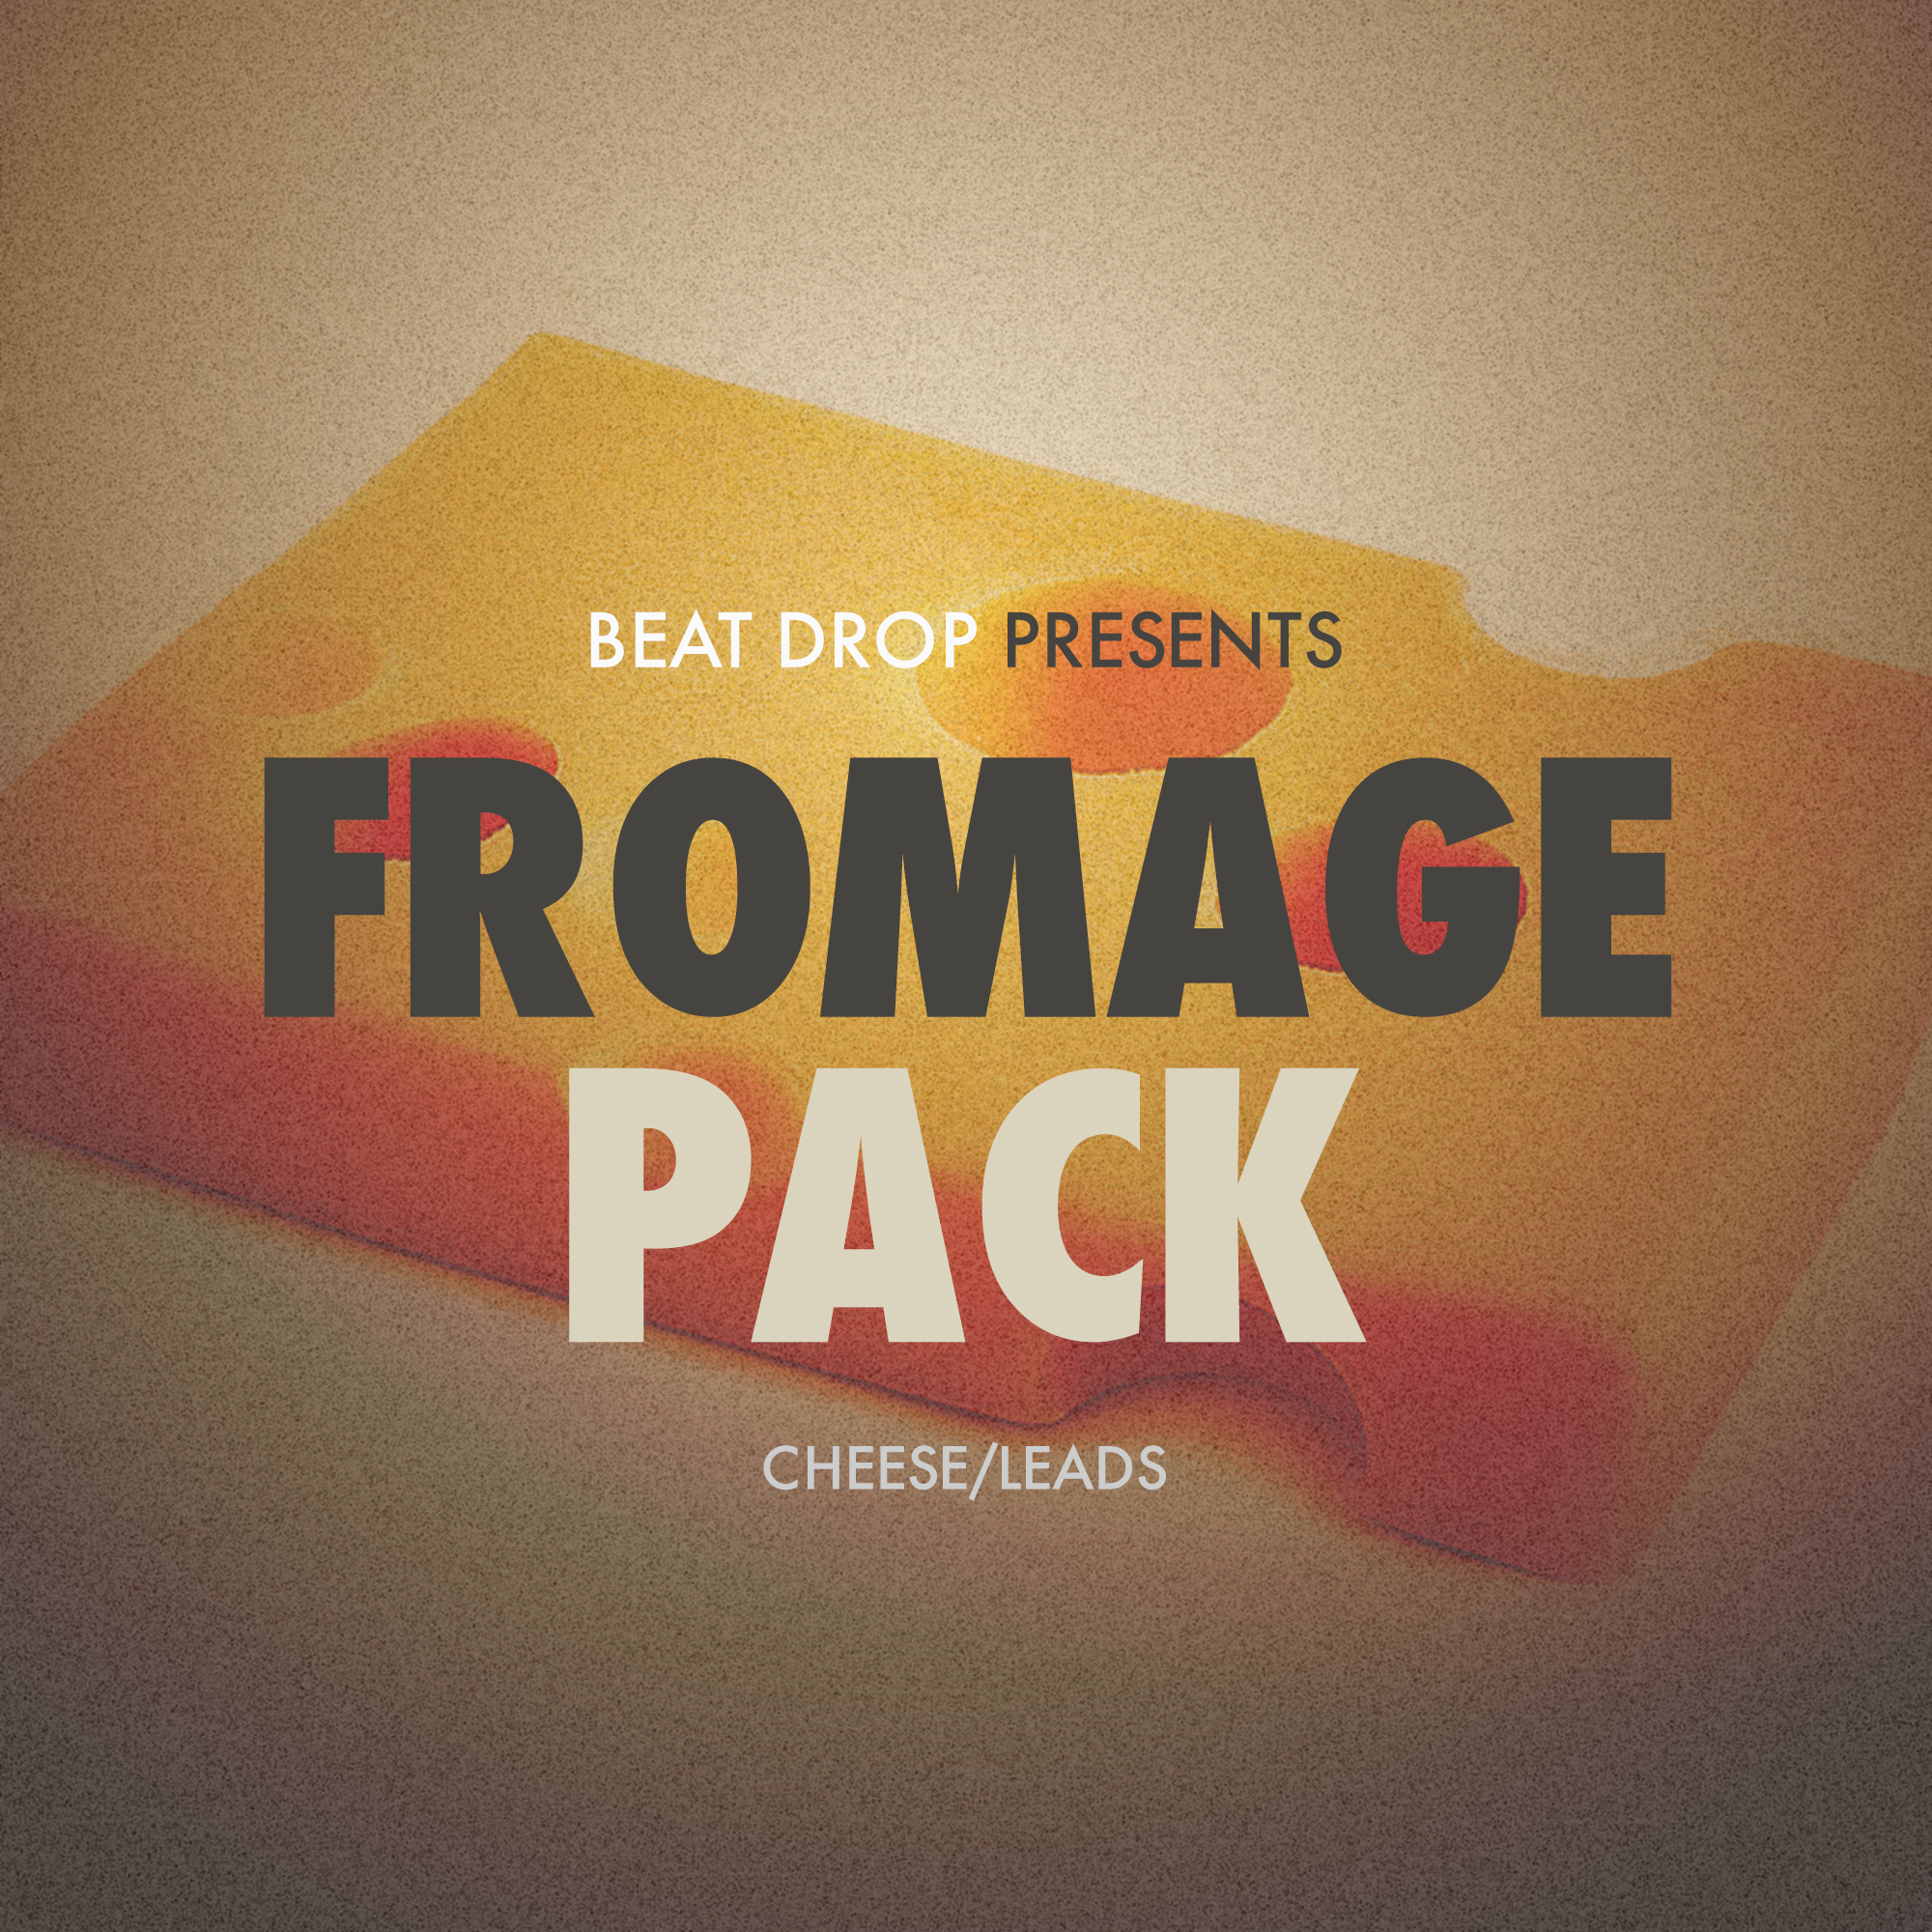 Fromage-Pack.jpg